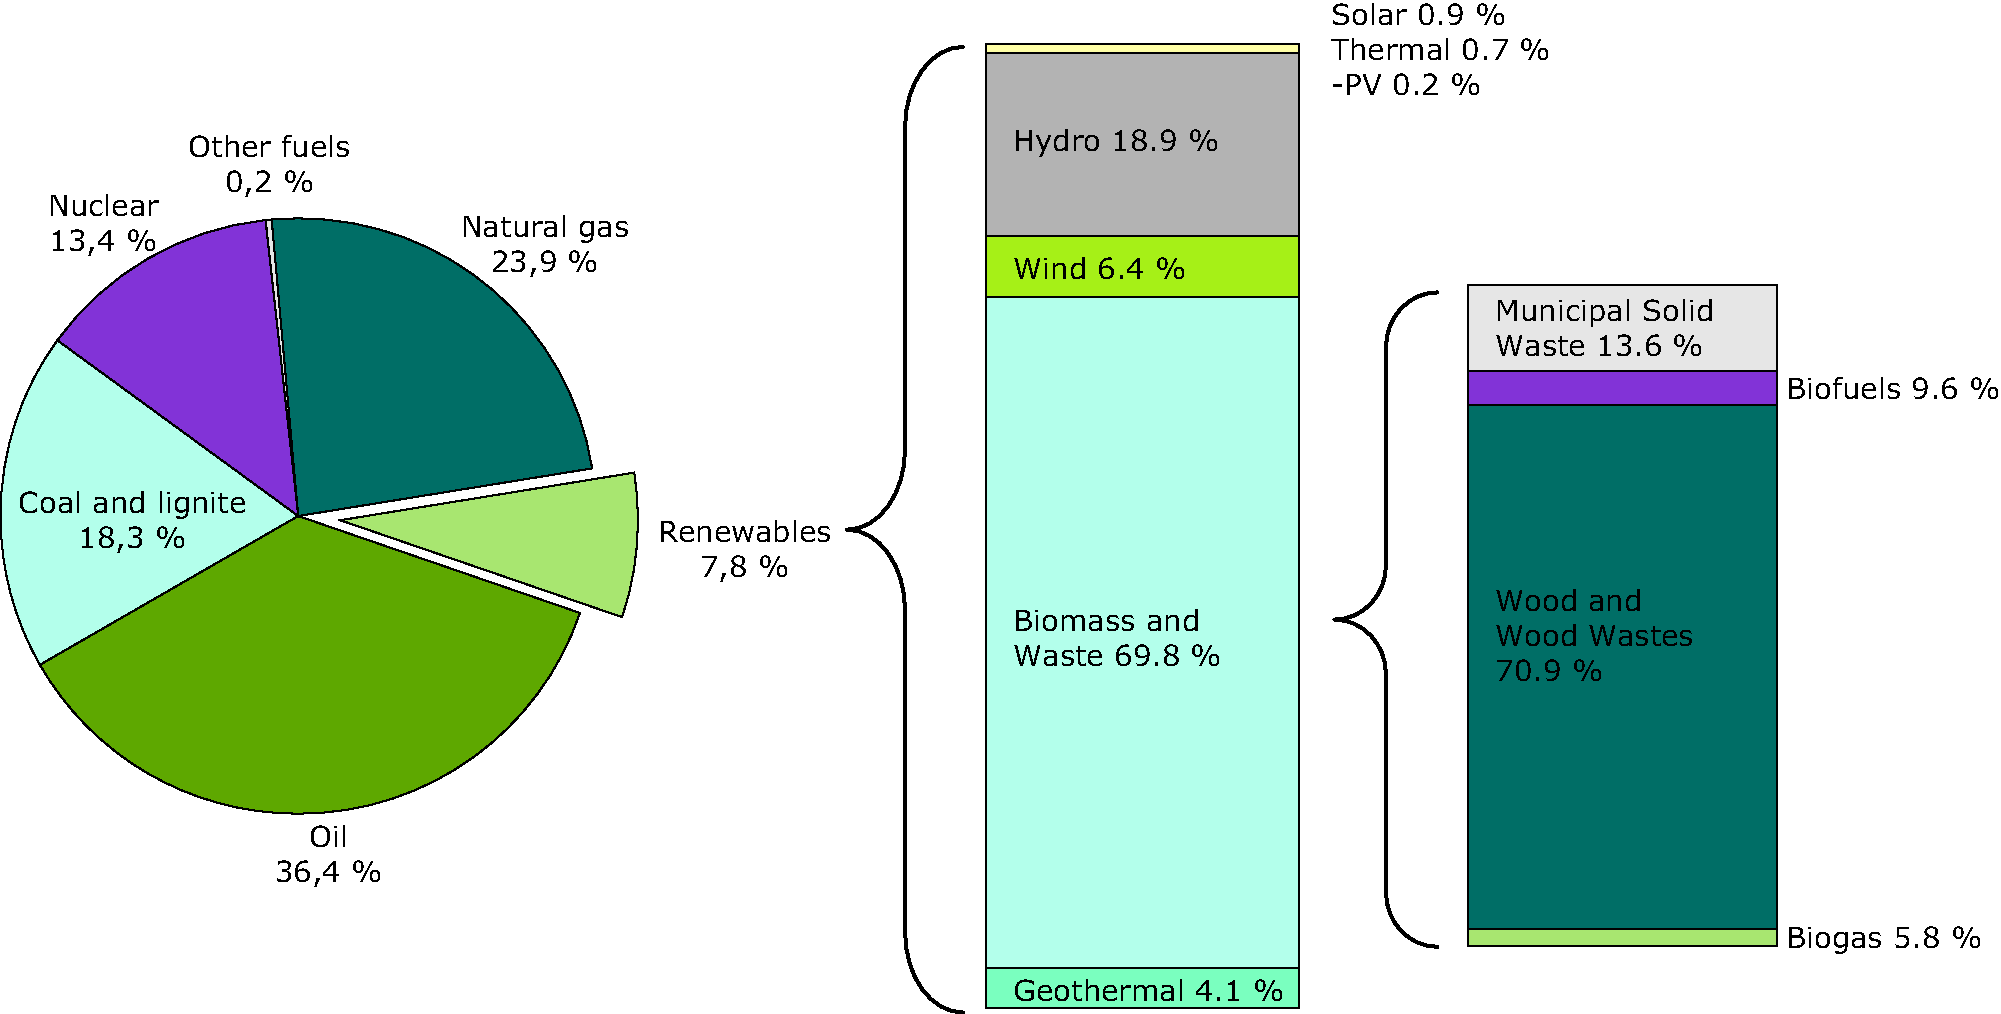 Total primary energy consumption by energy source in 2007, EU-27